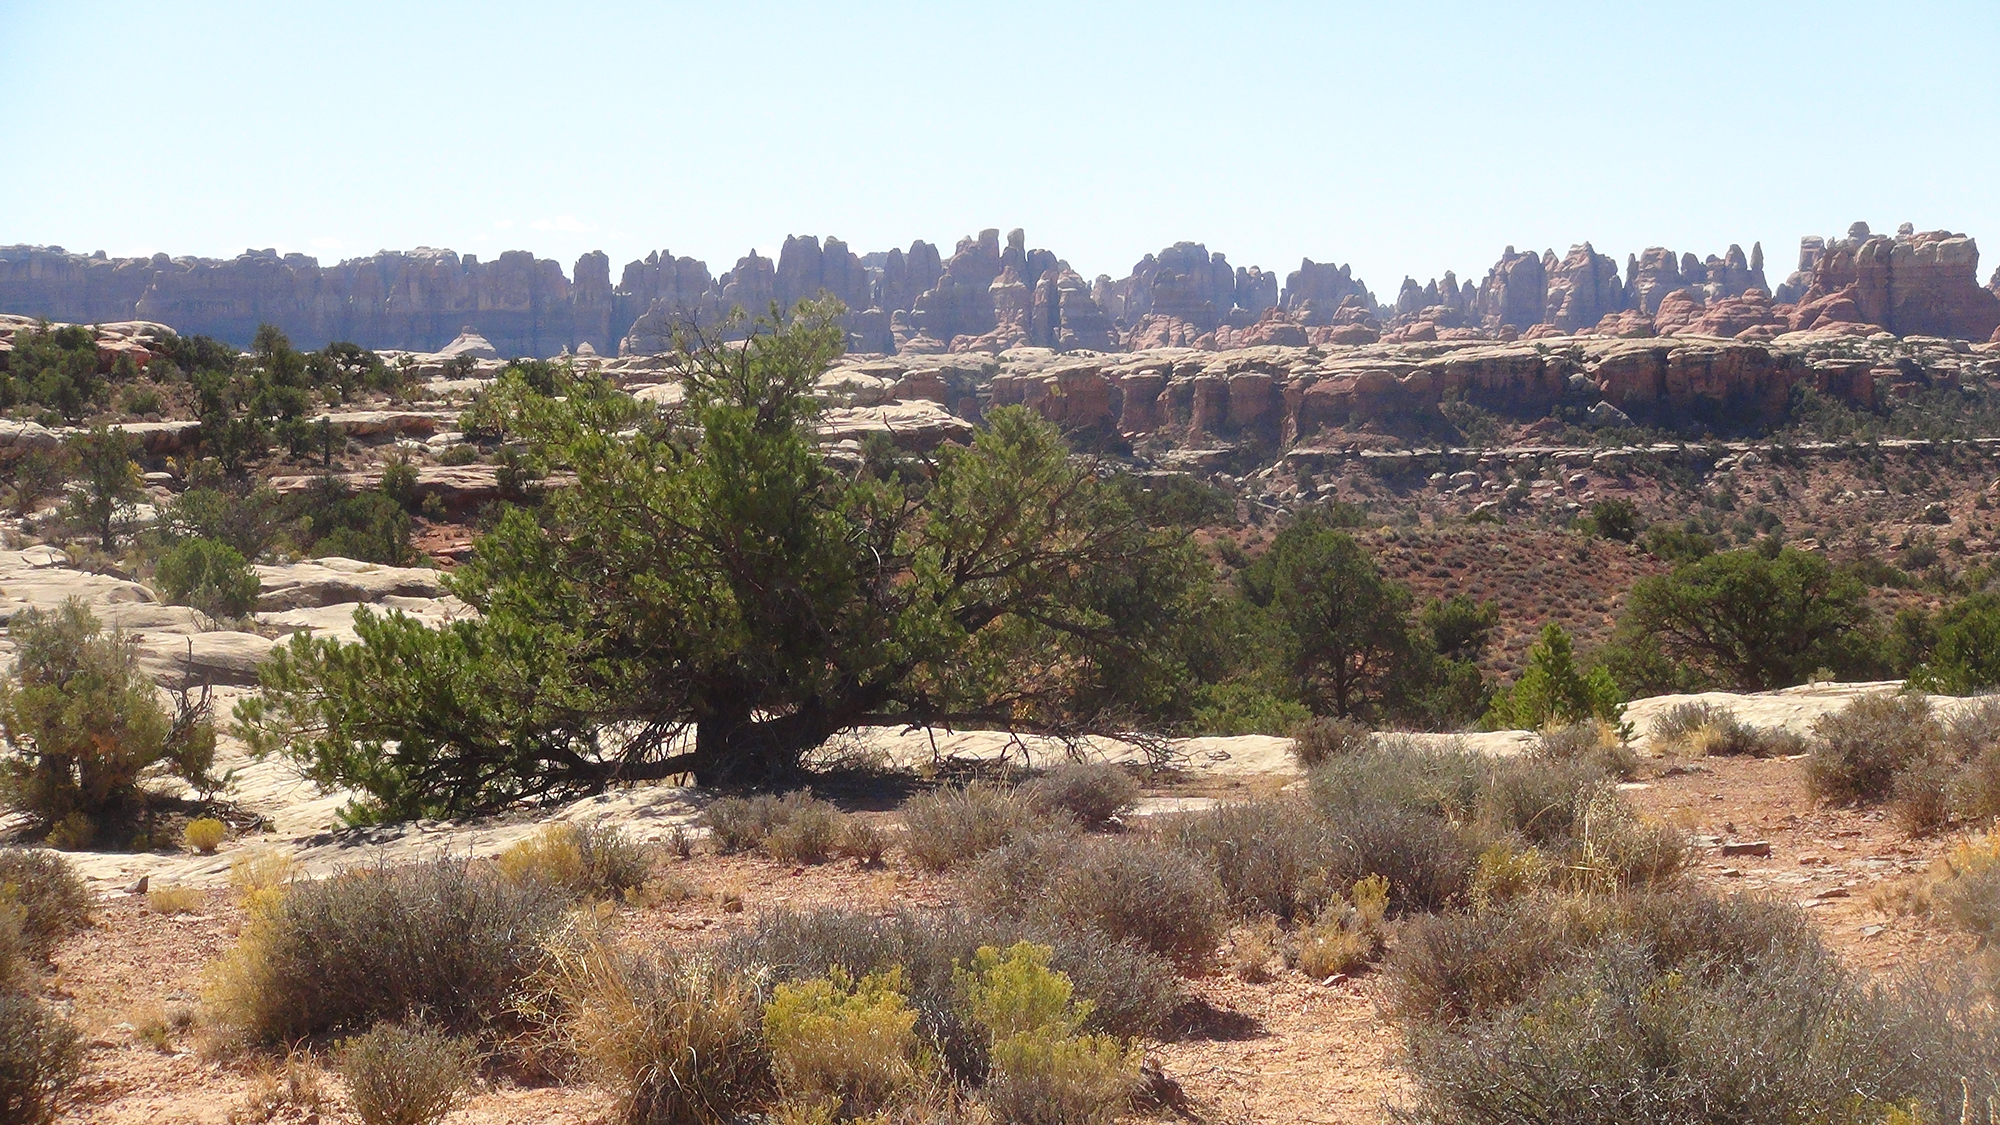 Highlights from Canyonlands